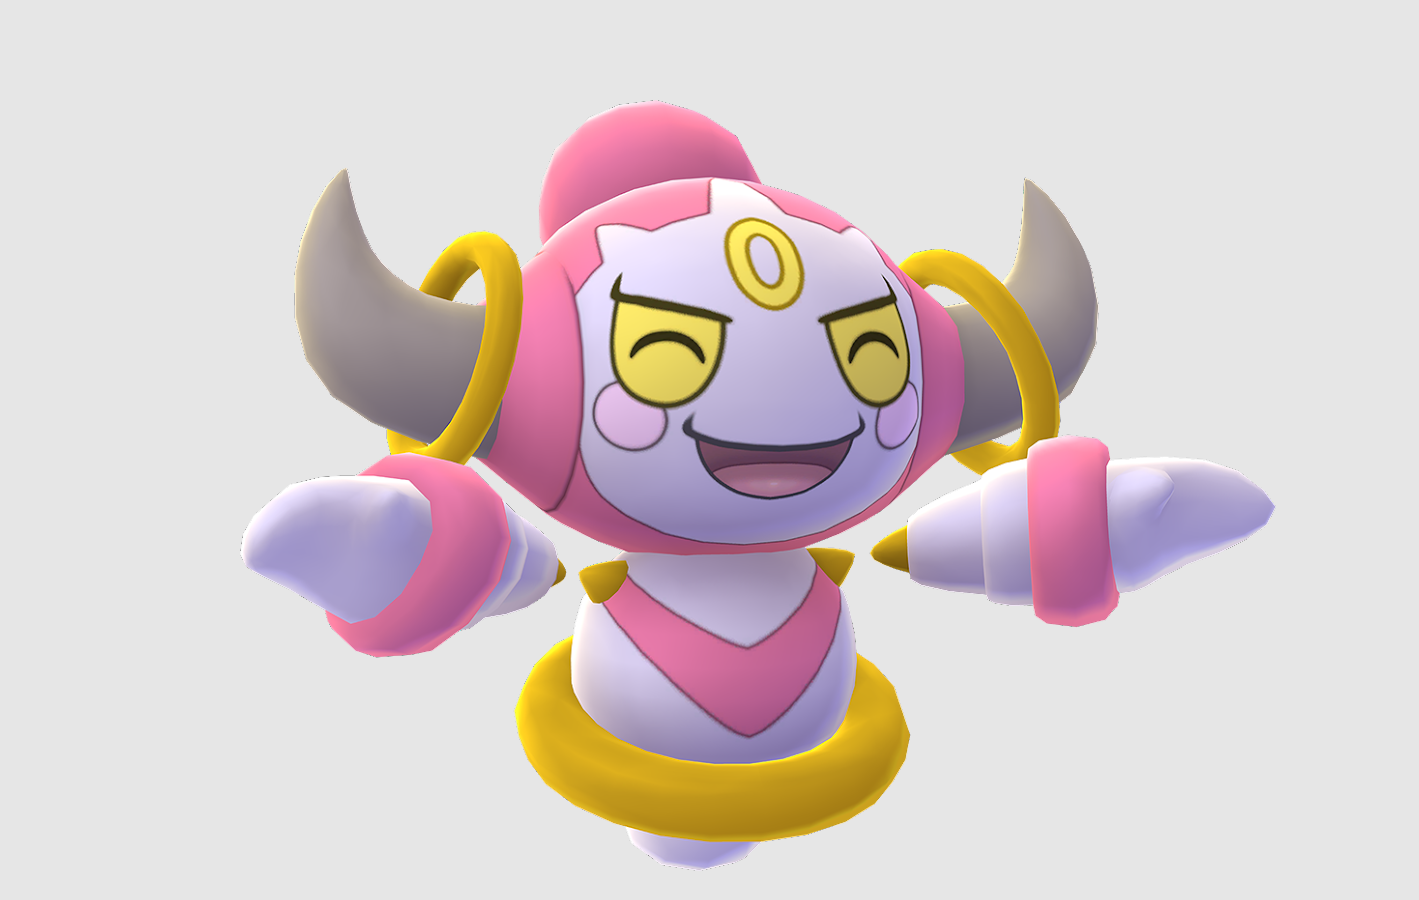 Hoopa celebrates with a happy face